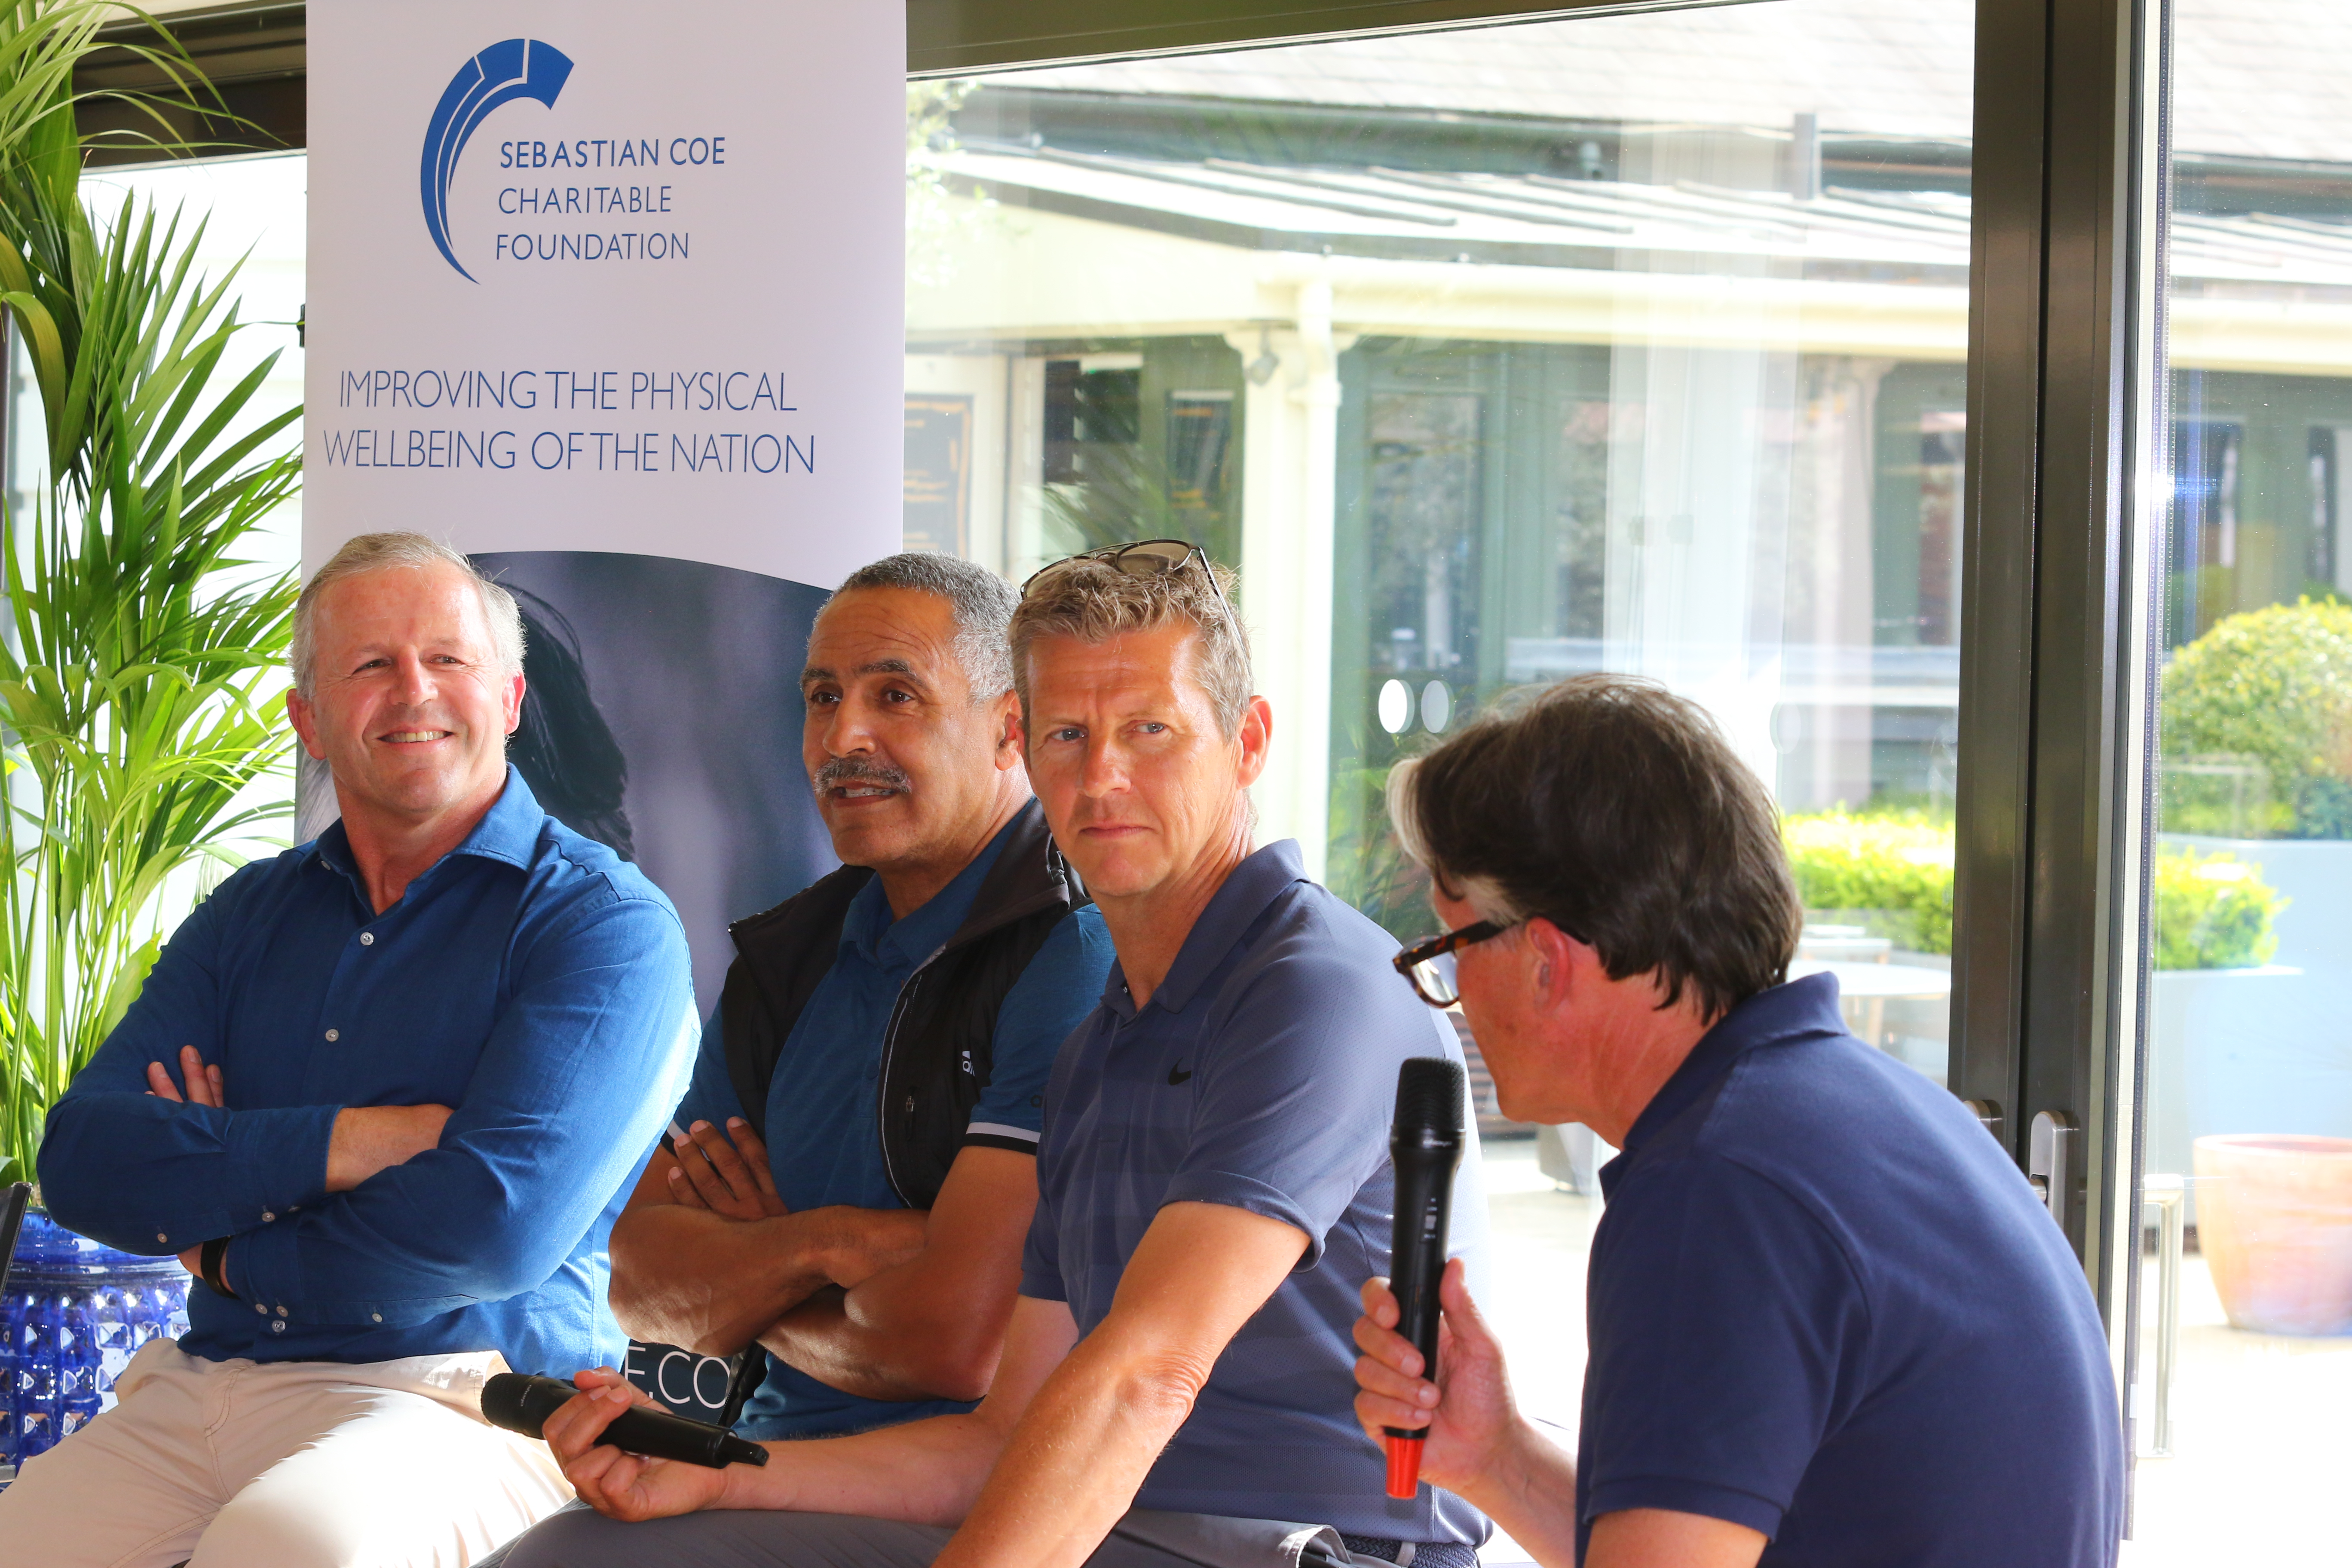 Seb interviewing Sean Fitz-Patrick, Daley Thompson and Steve Cram at our 2018 SCCF Golf Day